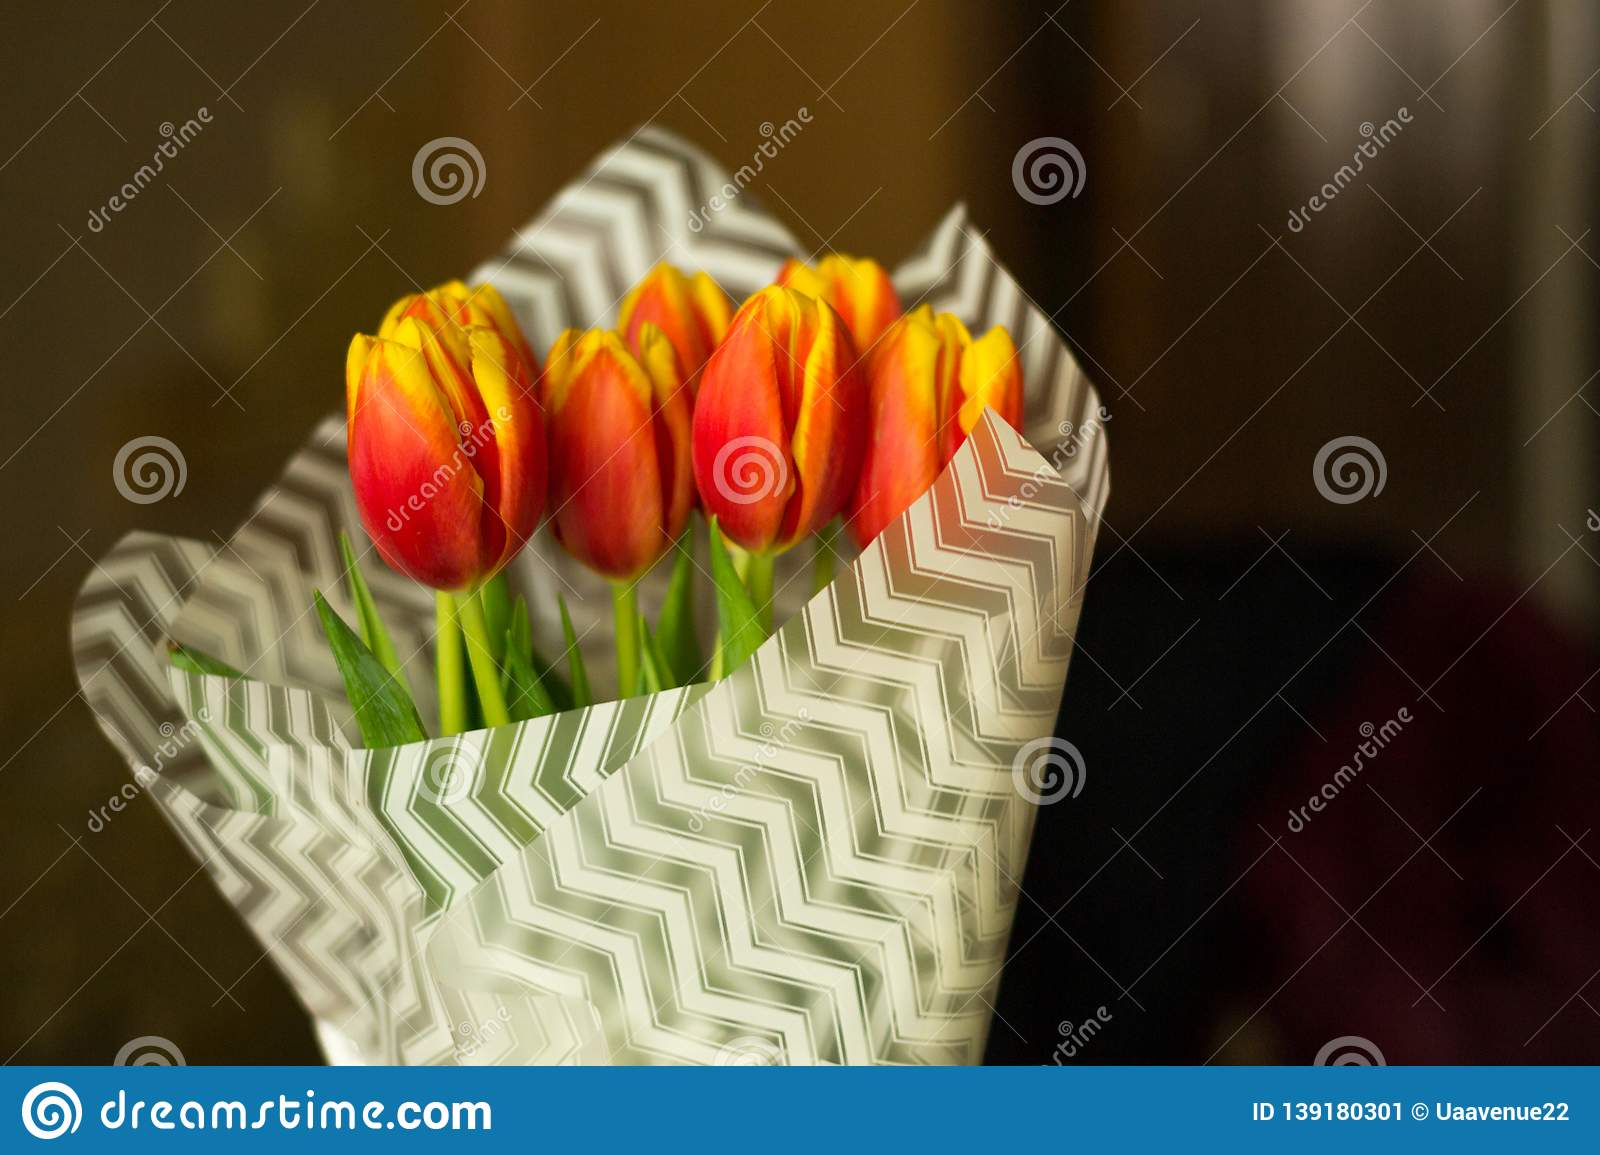 Fresh tulip flowers covered with white paper in vase on blurred background. Celebraiting holidays at home. Love present from